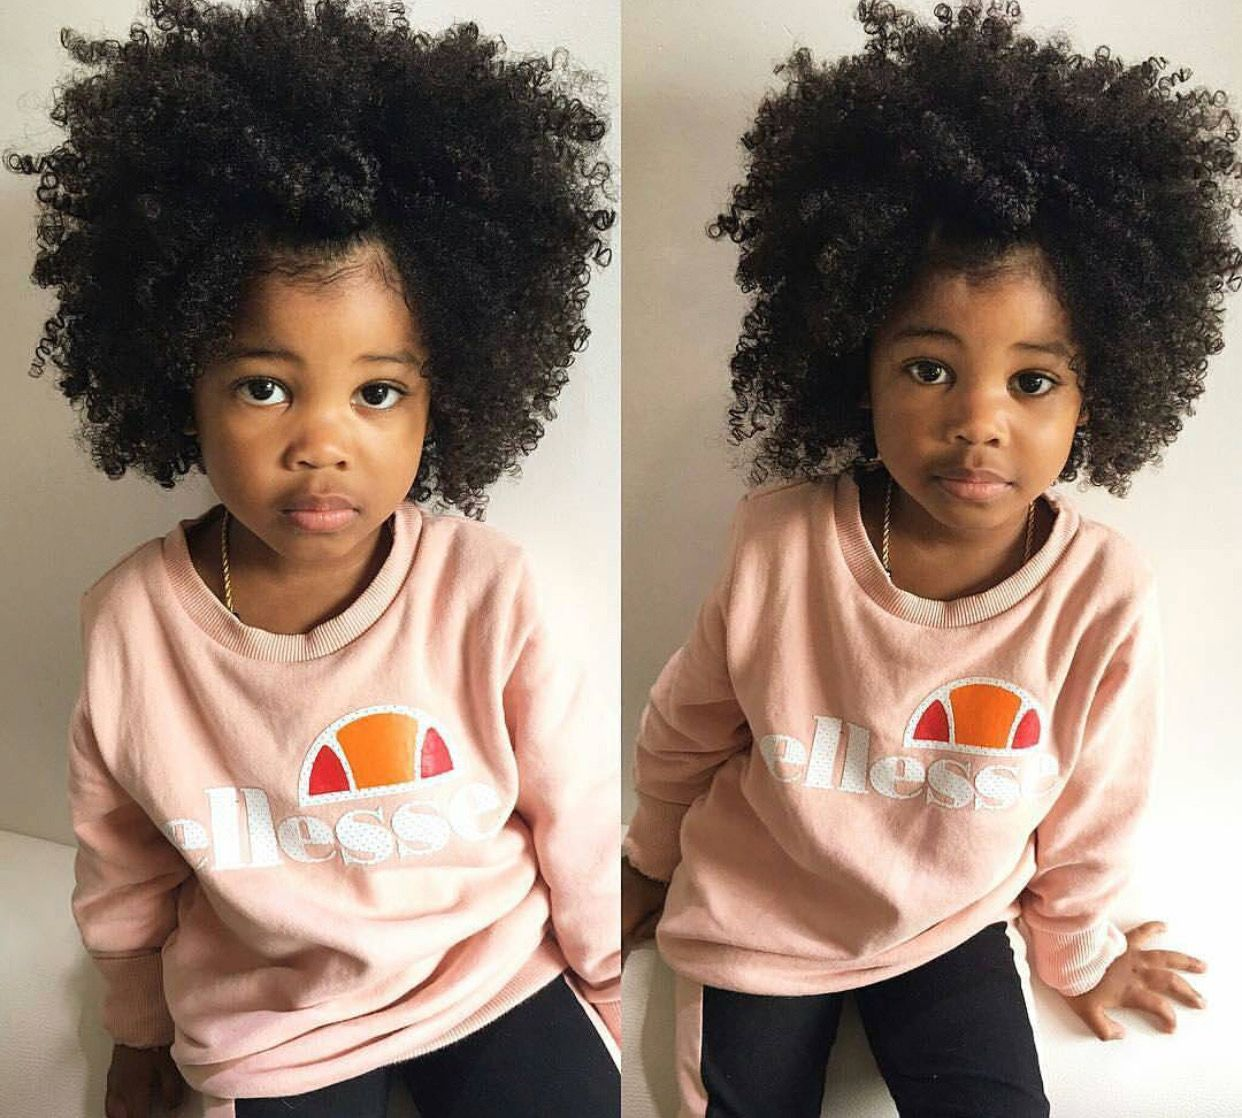 Rock hairstyle boy pin by kiyah carter on family  pinterest  queens baby fever and